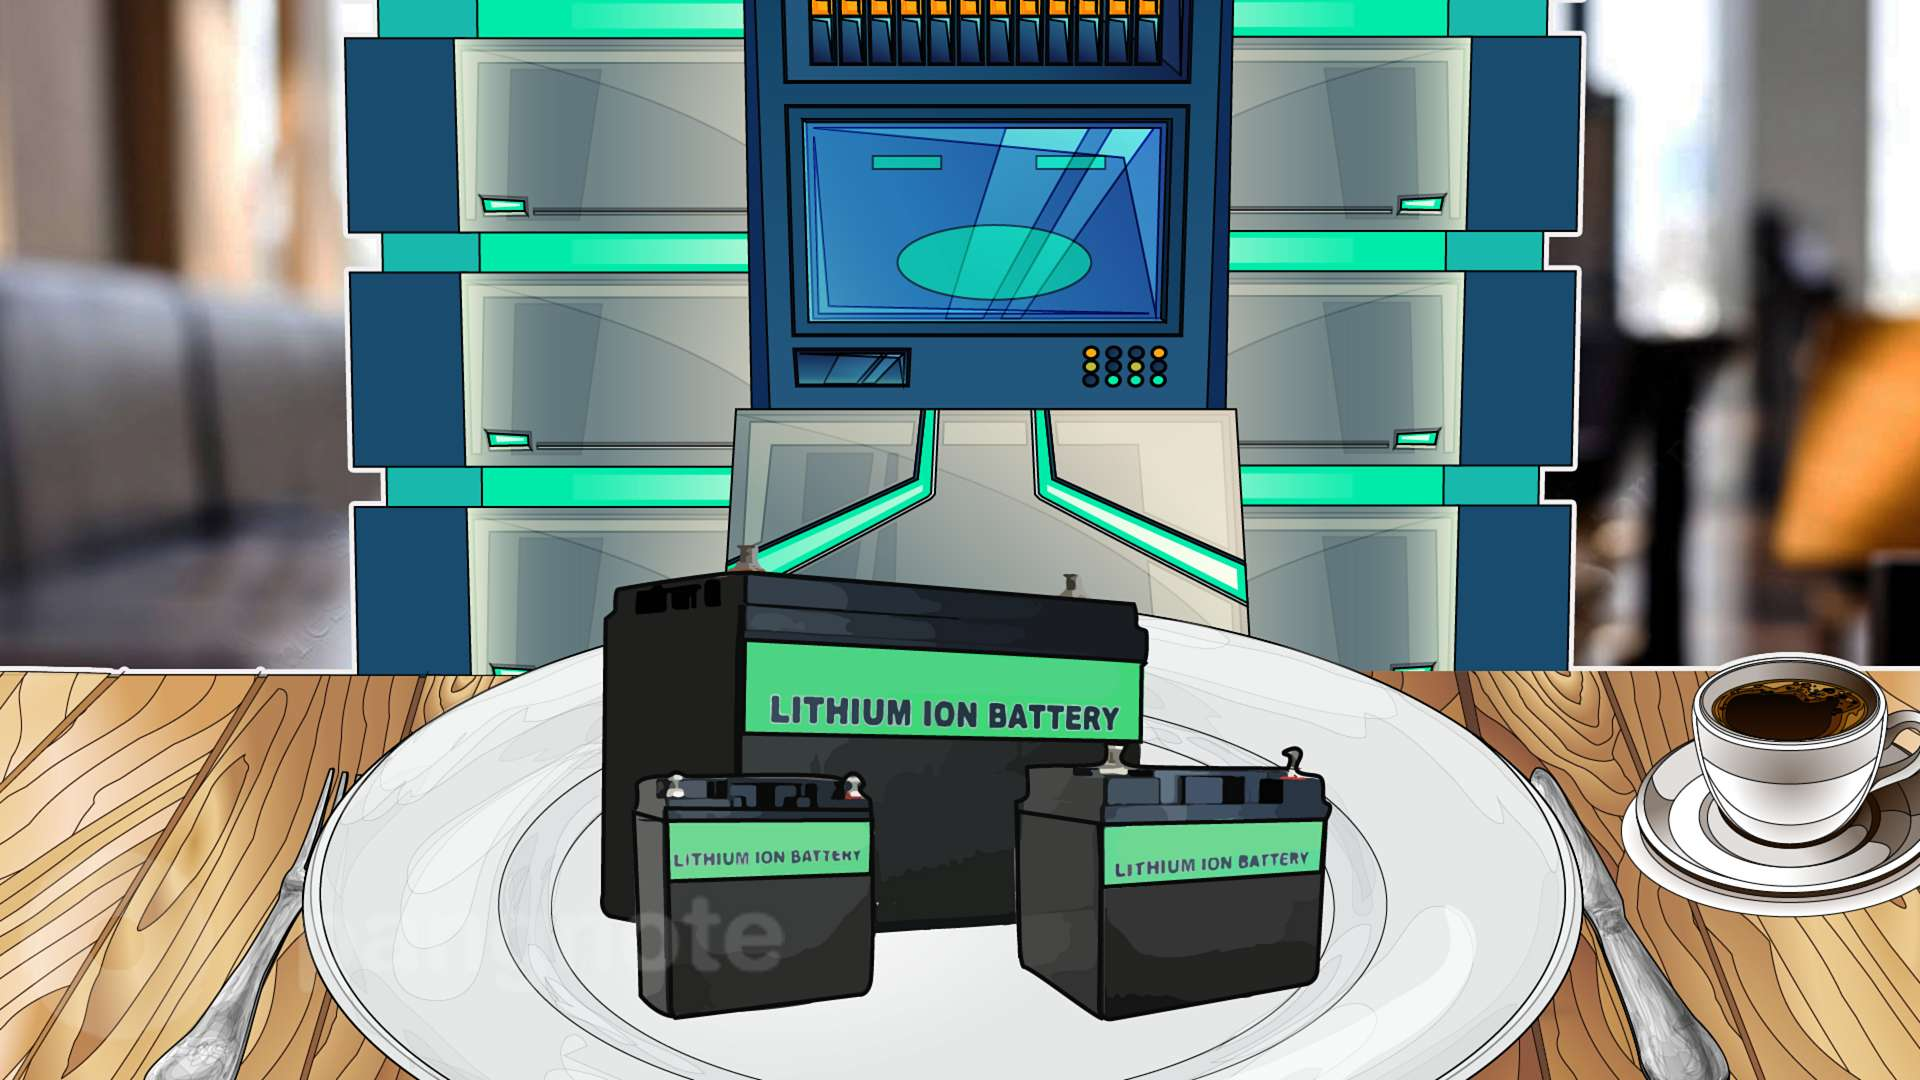 Lithium-ion batteries as UPS in the data center